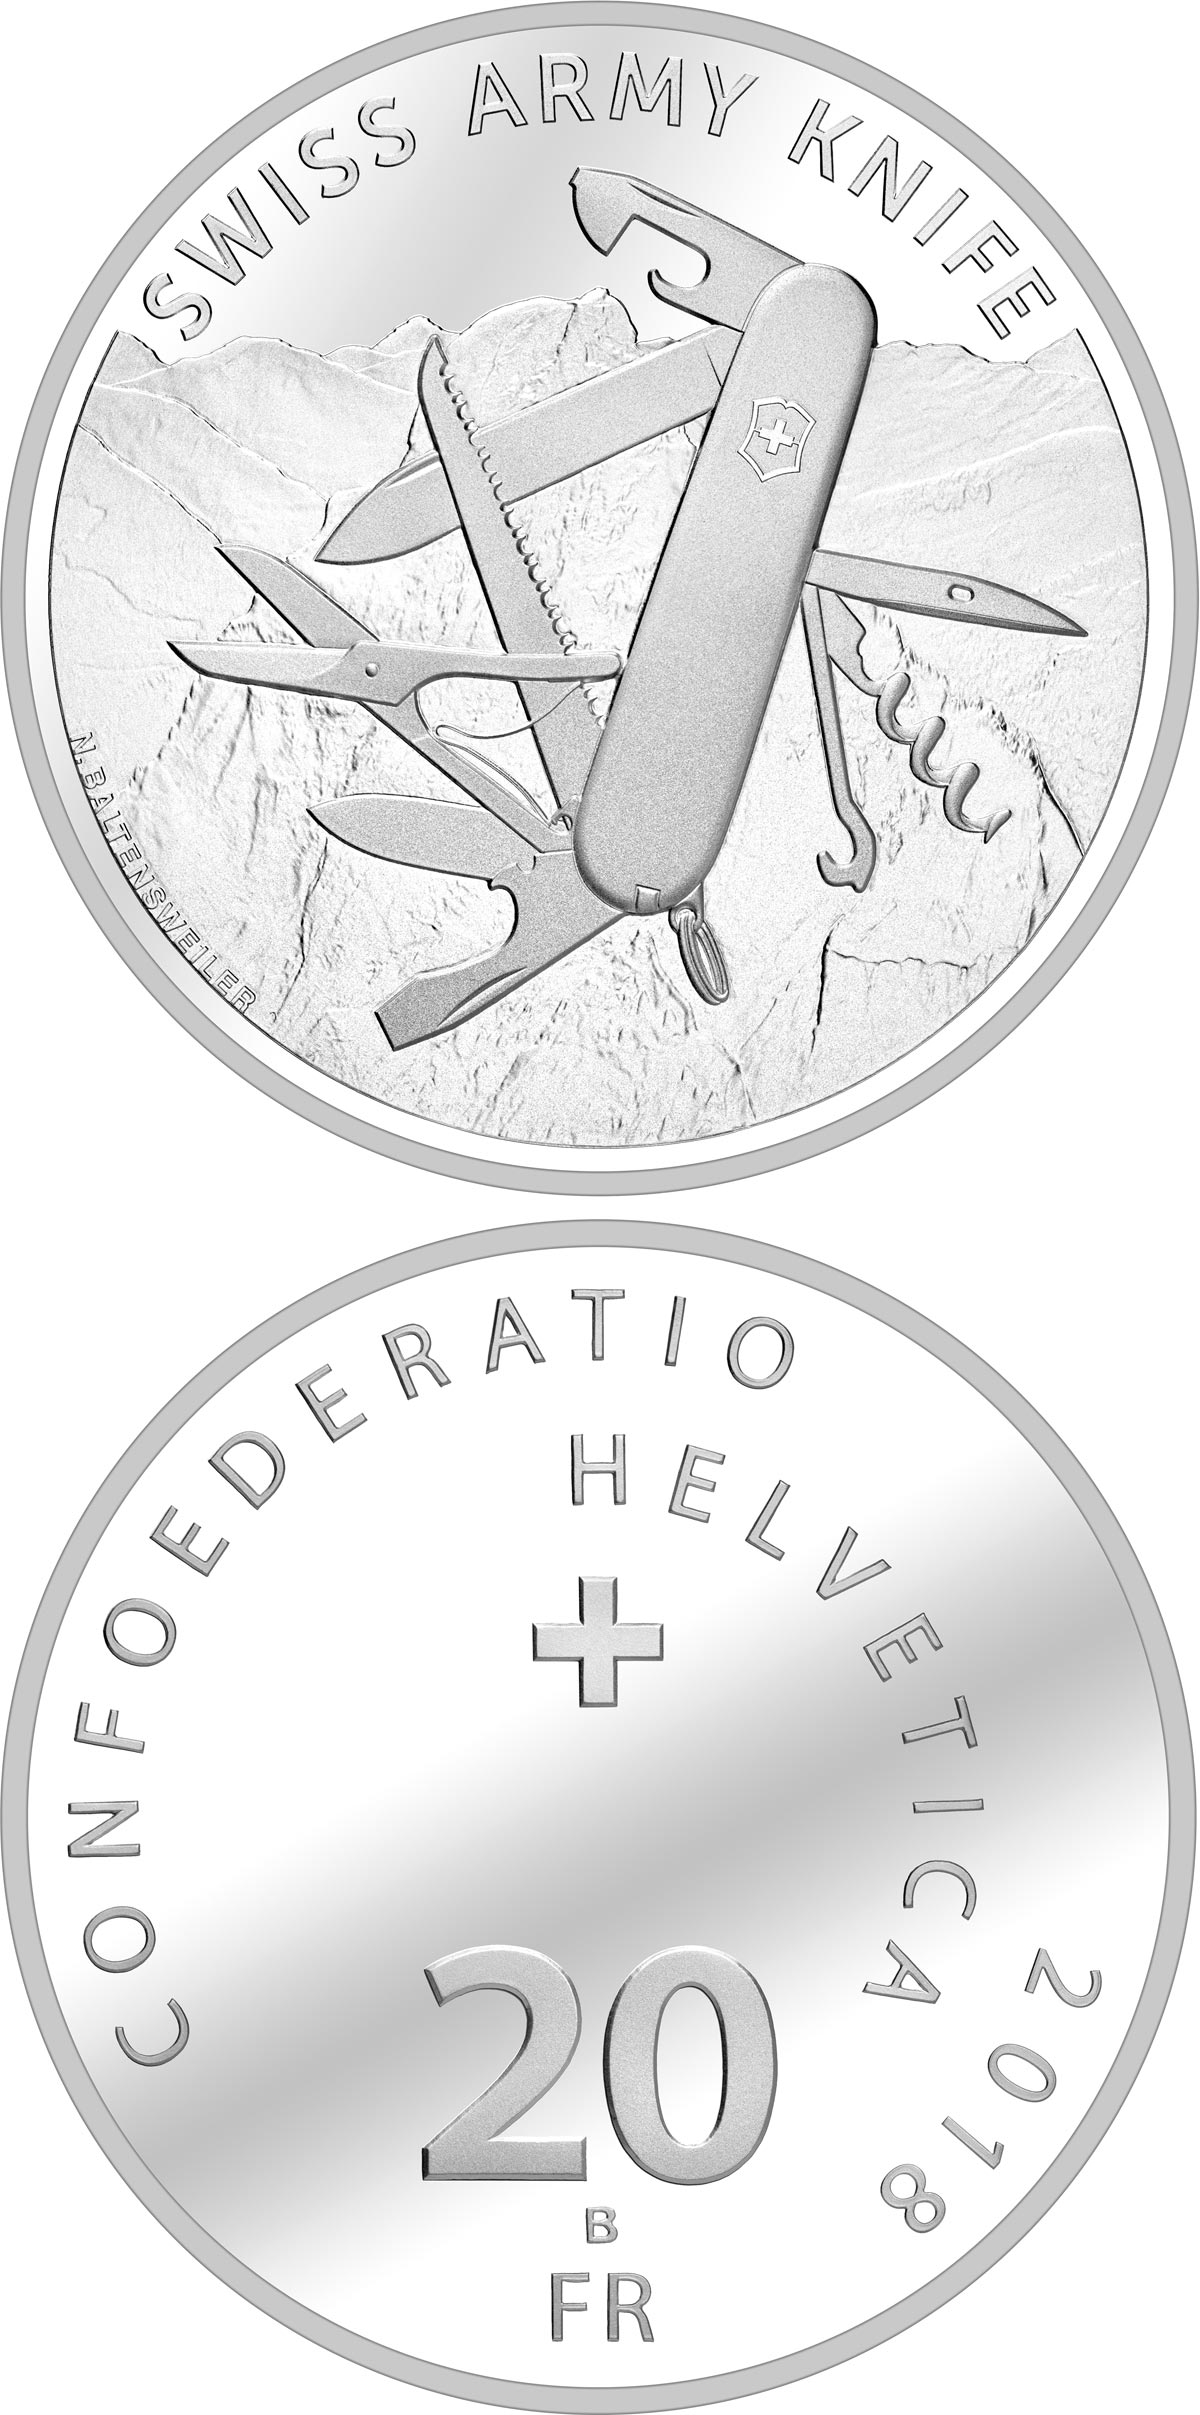 Image of 20 francs coin - Swiss Army Knife | Switzerland 2018.  The Silver coin is of Proof, BU quality.